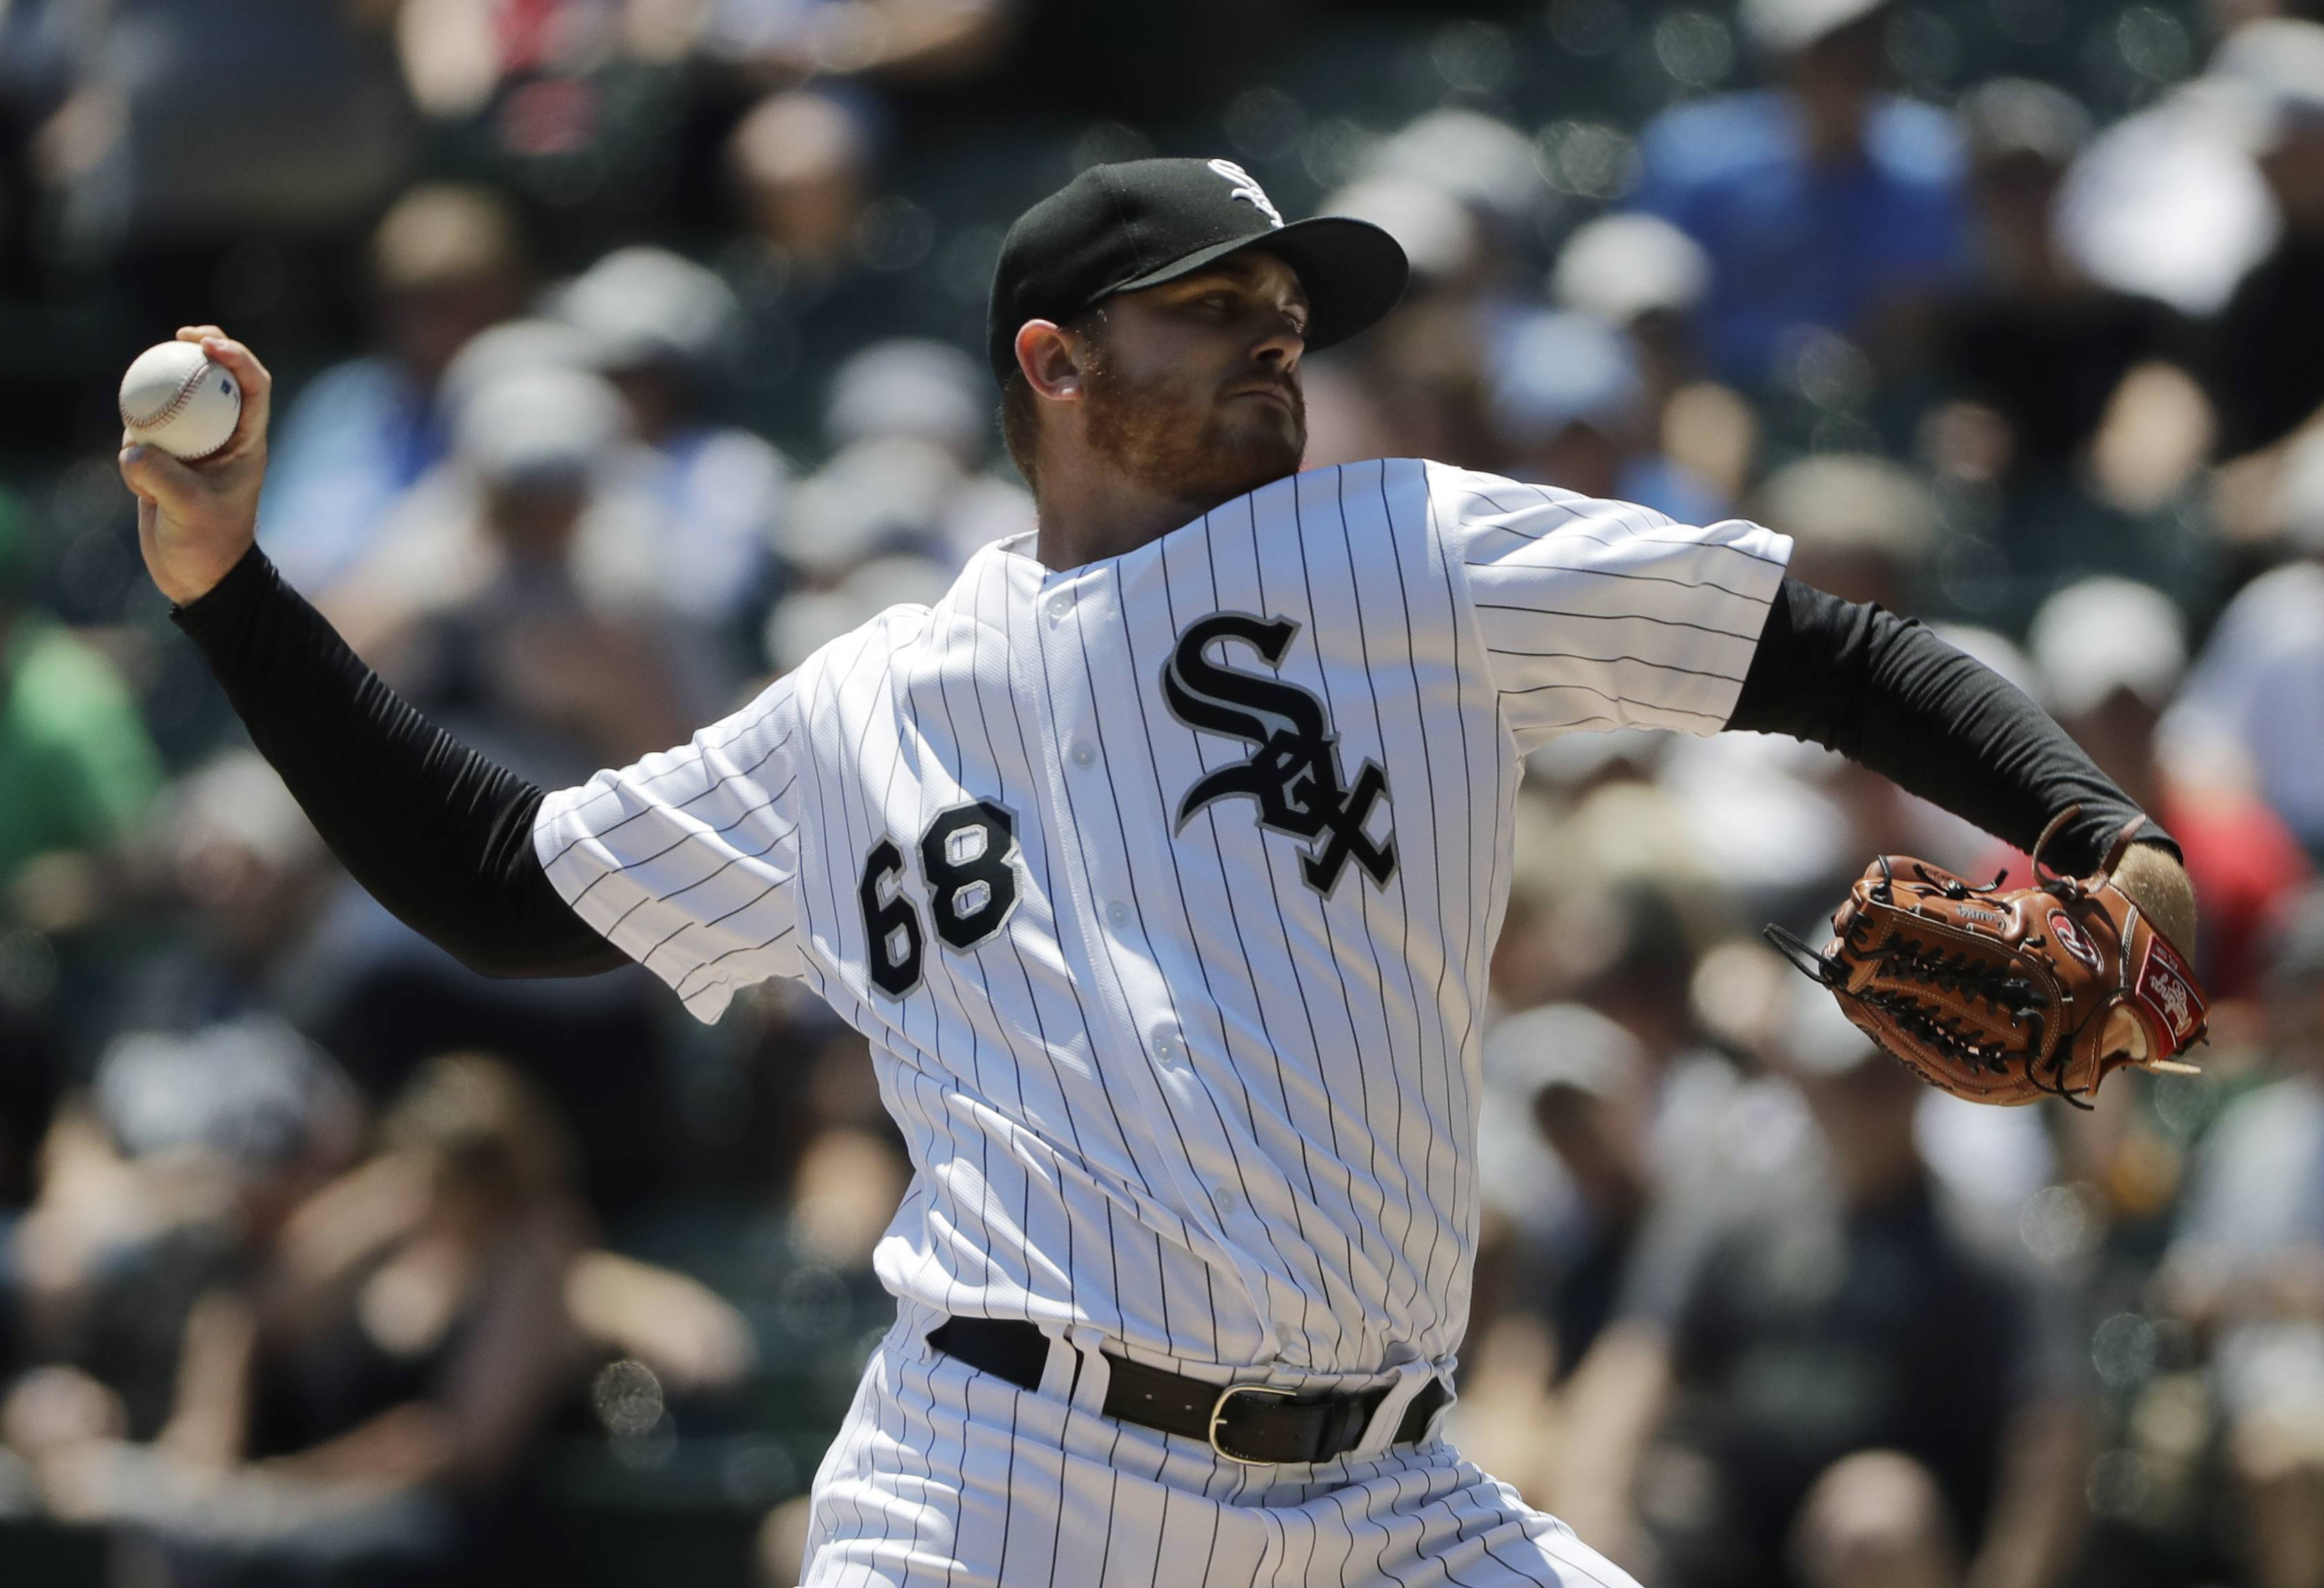 The Chicago White Sox took a 5-0 lead in the first inning but lost 7-6 to the Oakland A's at Guaranteed Rate Field Saturday. Sox starter Dylan Covey left the game in the fifth with right hip soreness.